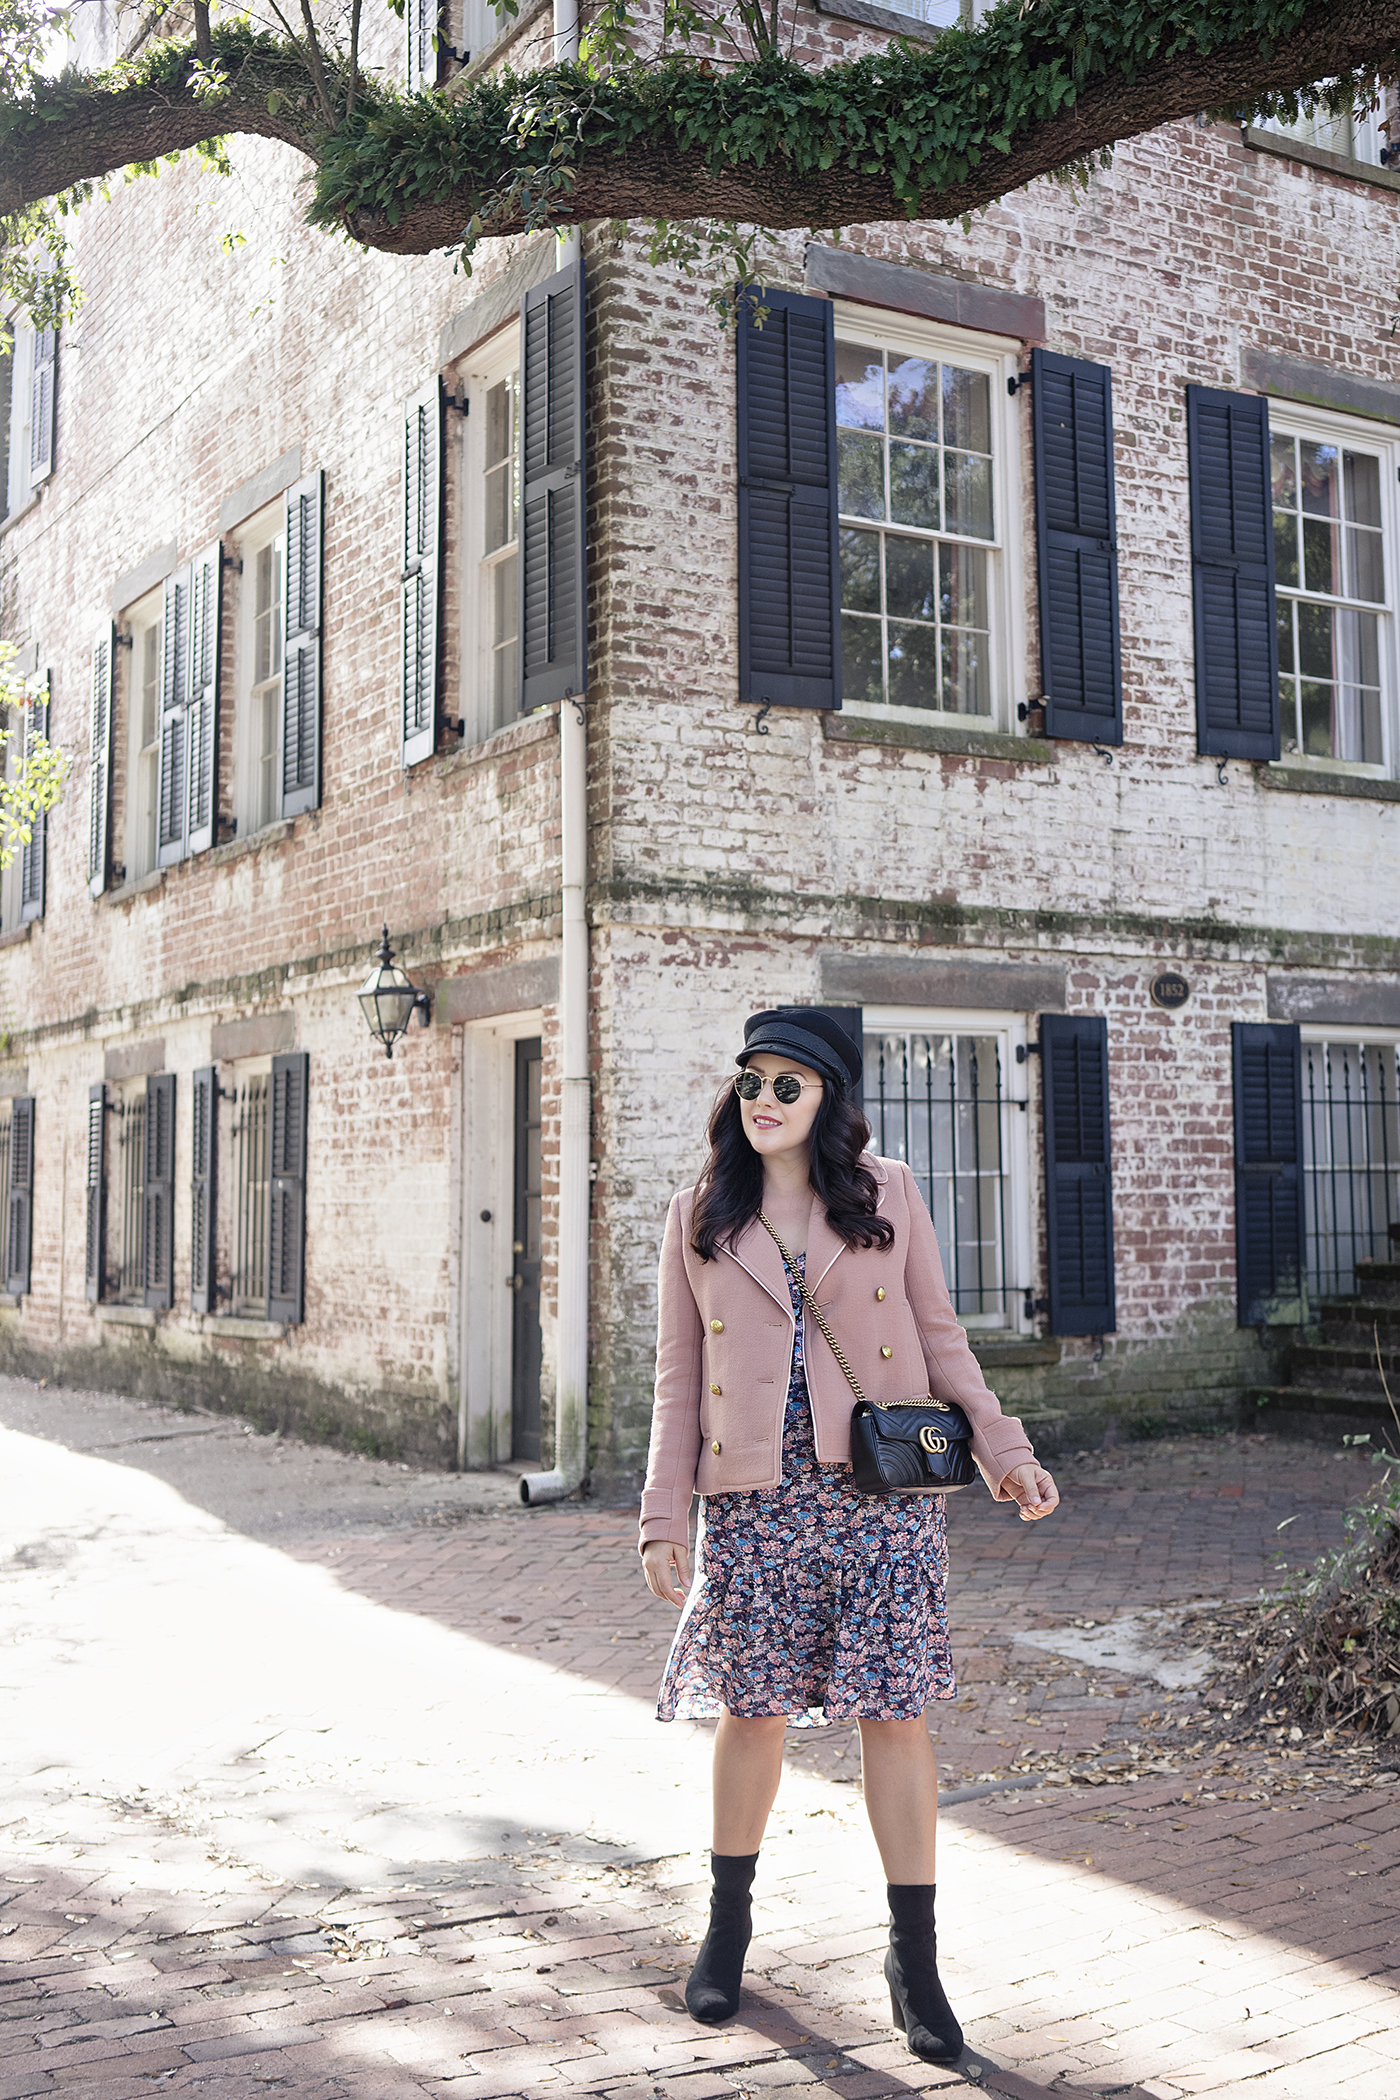 Best Photo Spots in Savannah